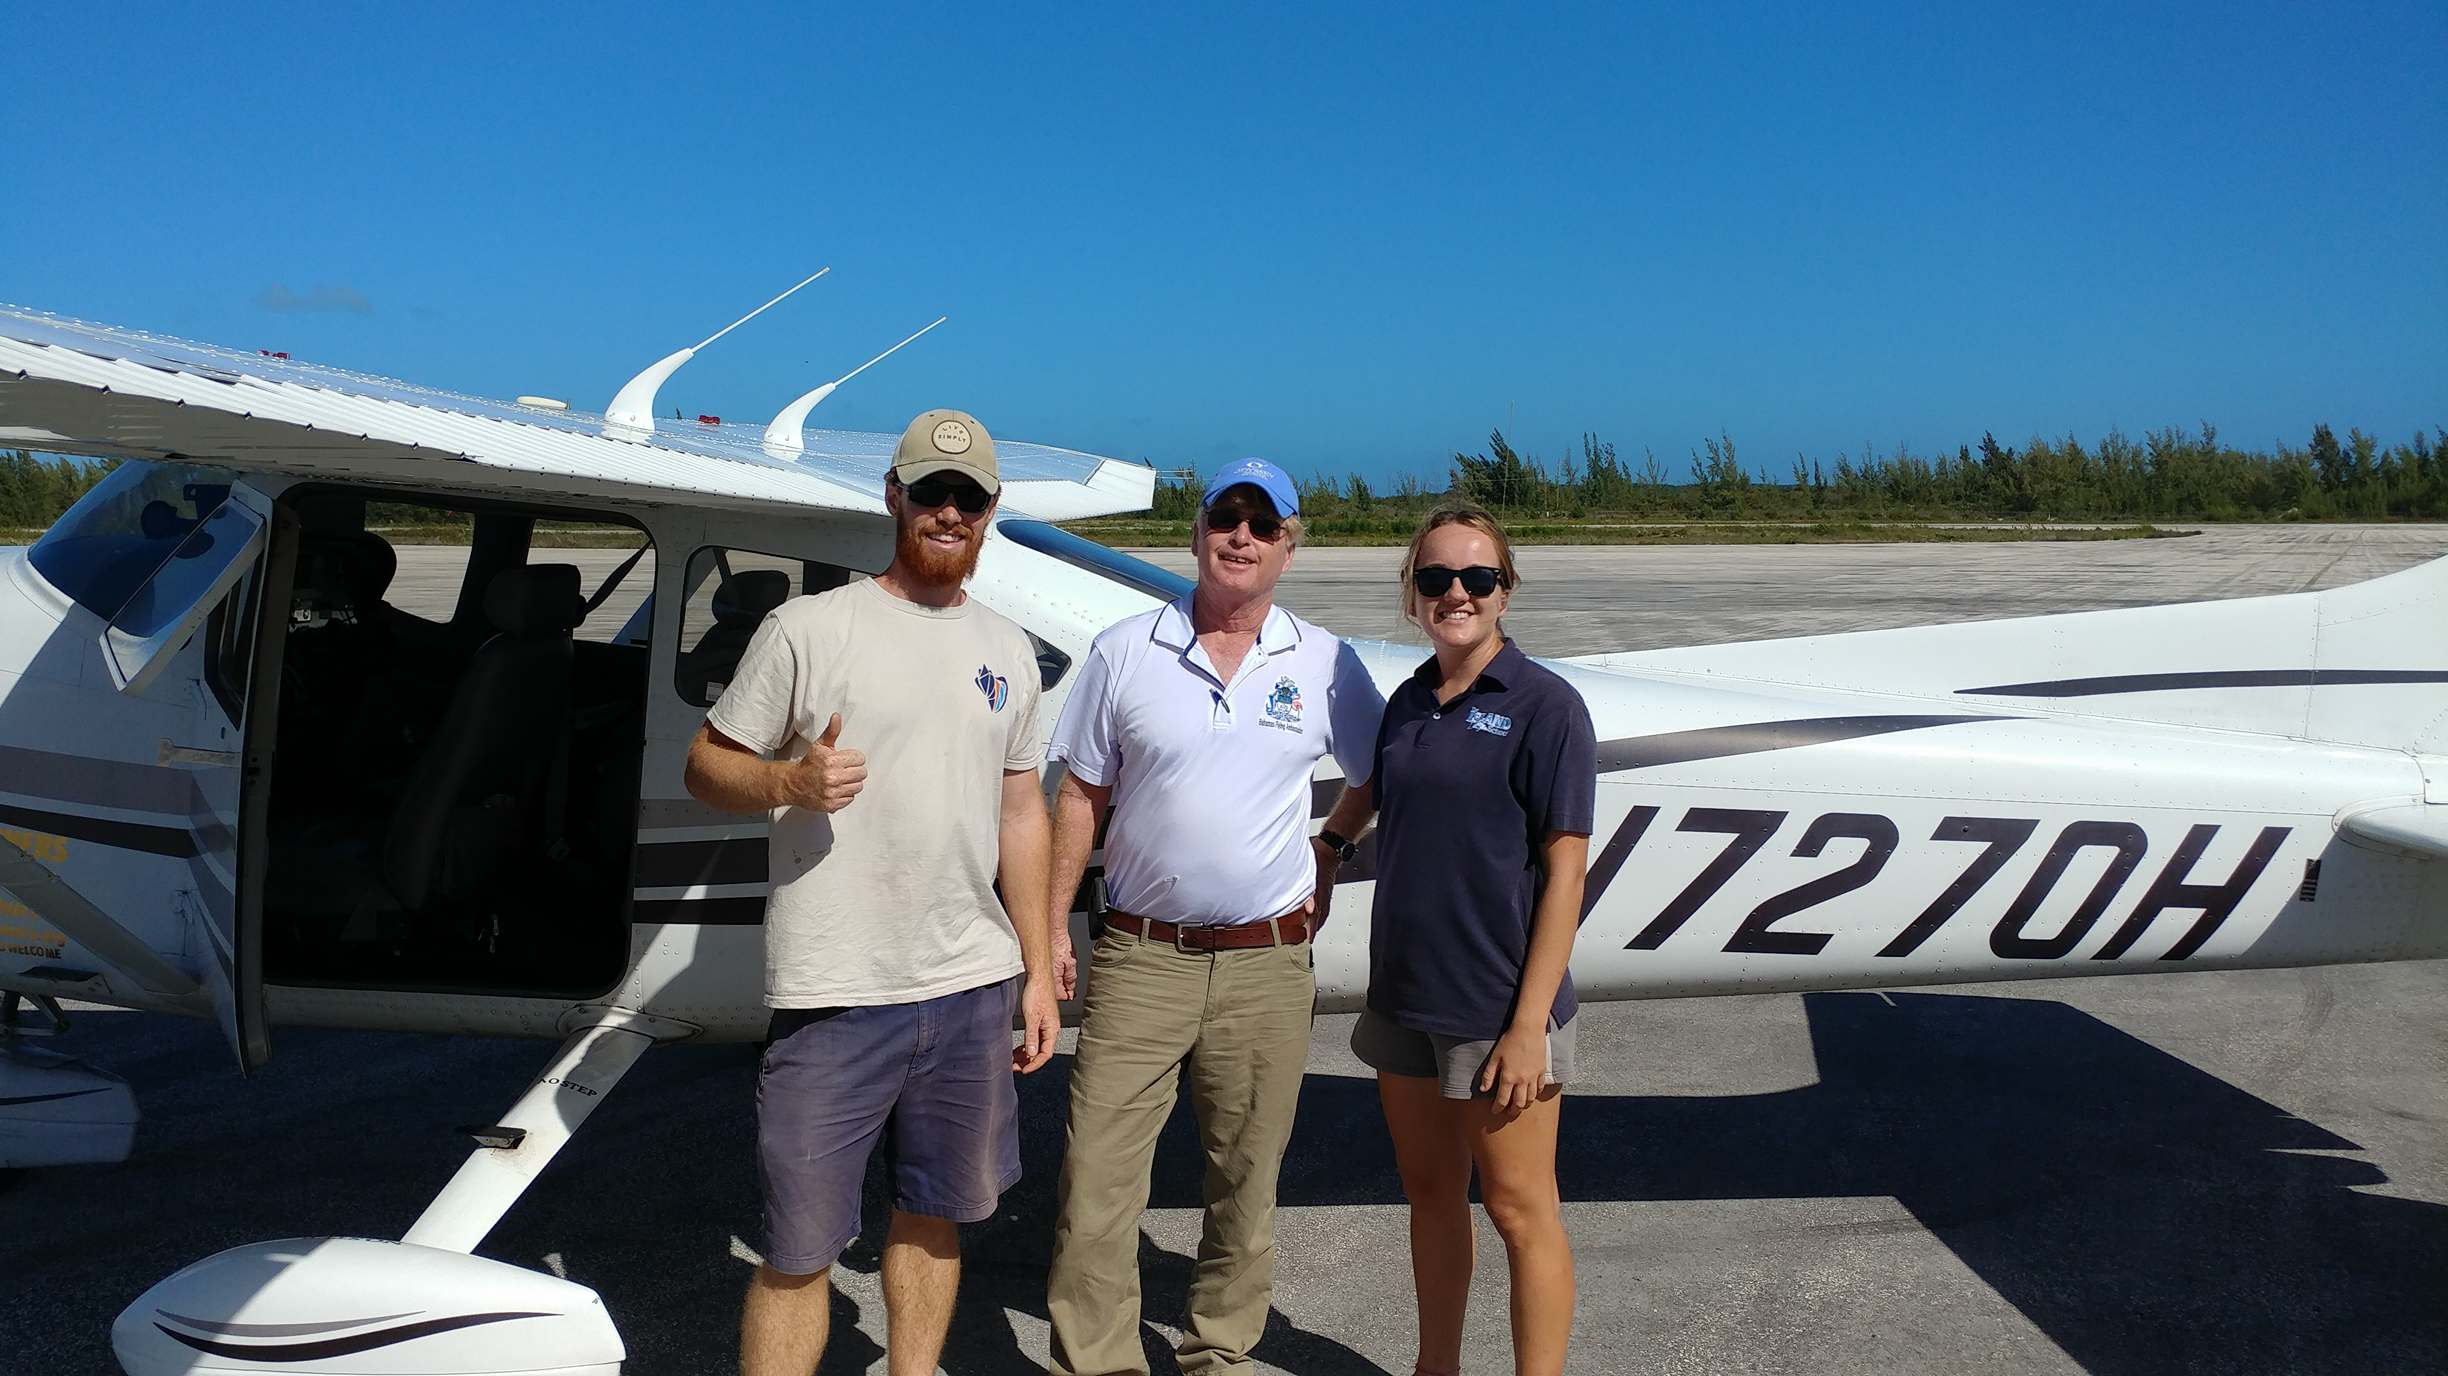 CEI researchers Eric Schneider (left) and Danielle Orrell (right) waving off Mark M. Steinberg (middle, pilot) transporting the samples to the US for analysis.